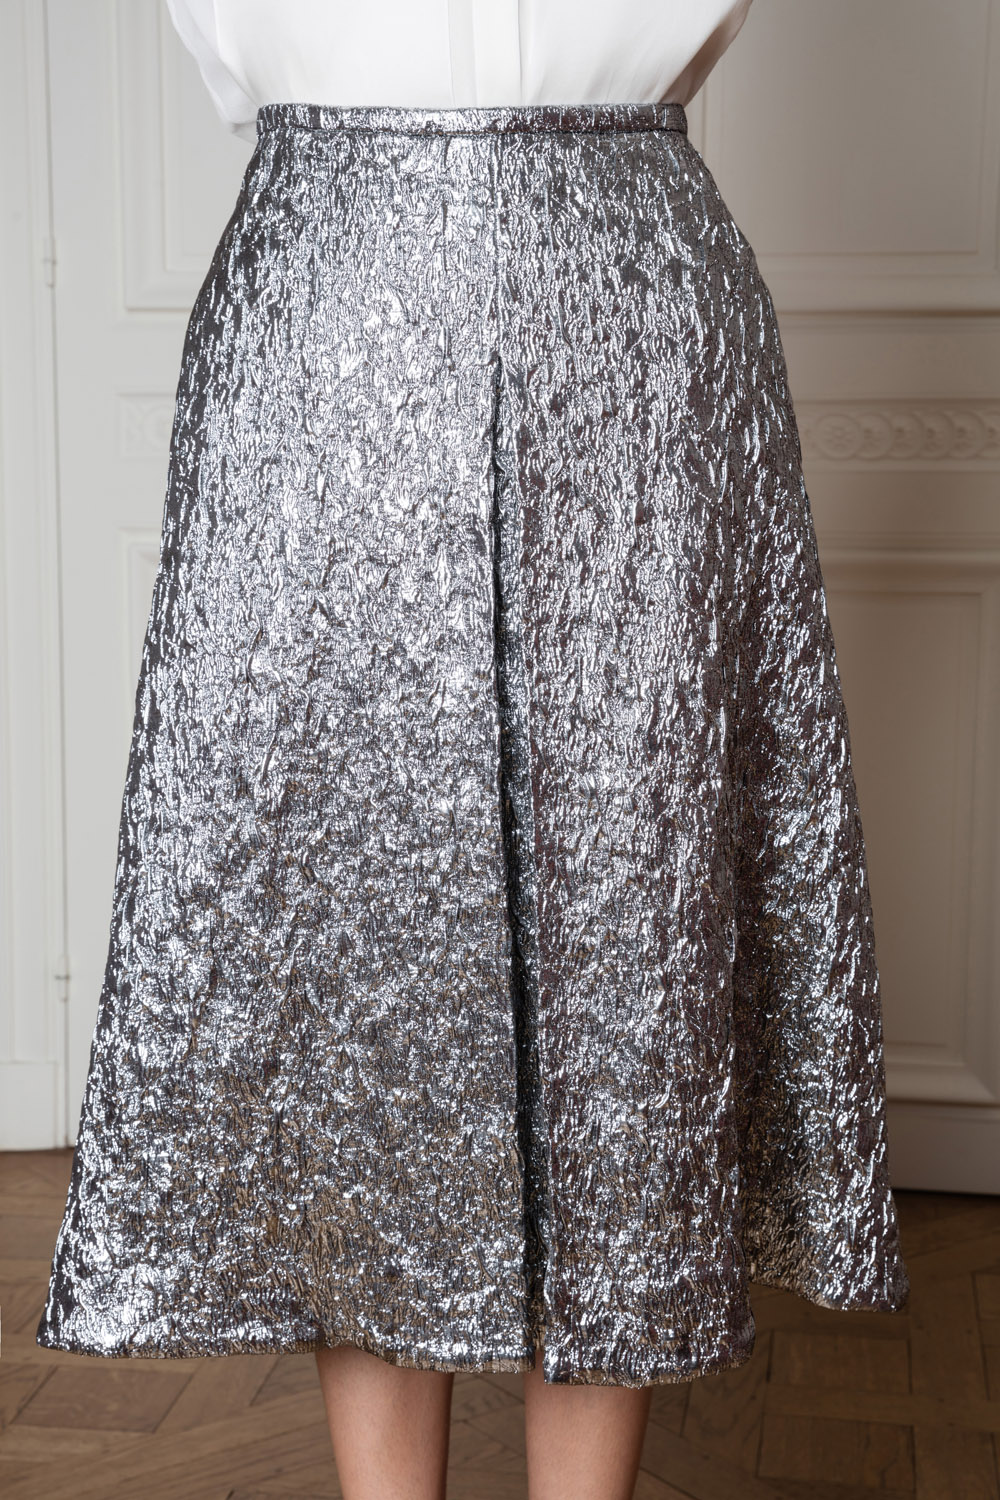 Metallic grey midi skirt